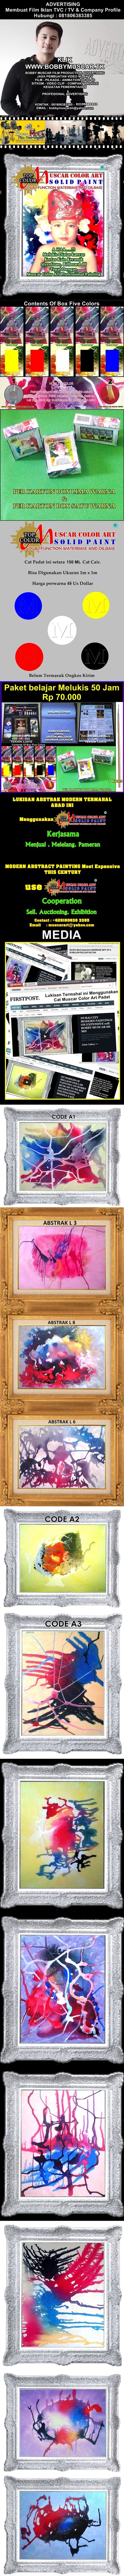 Muscar Color art gallery Contact : +6281806383385